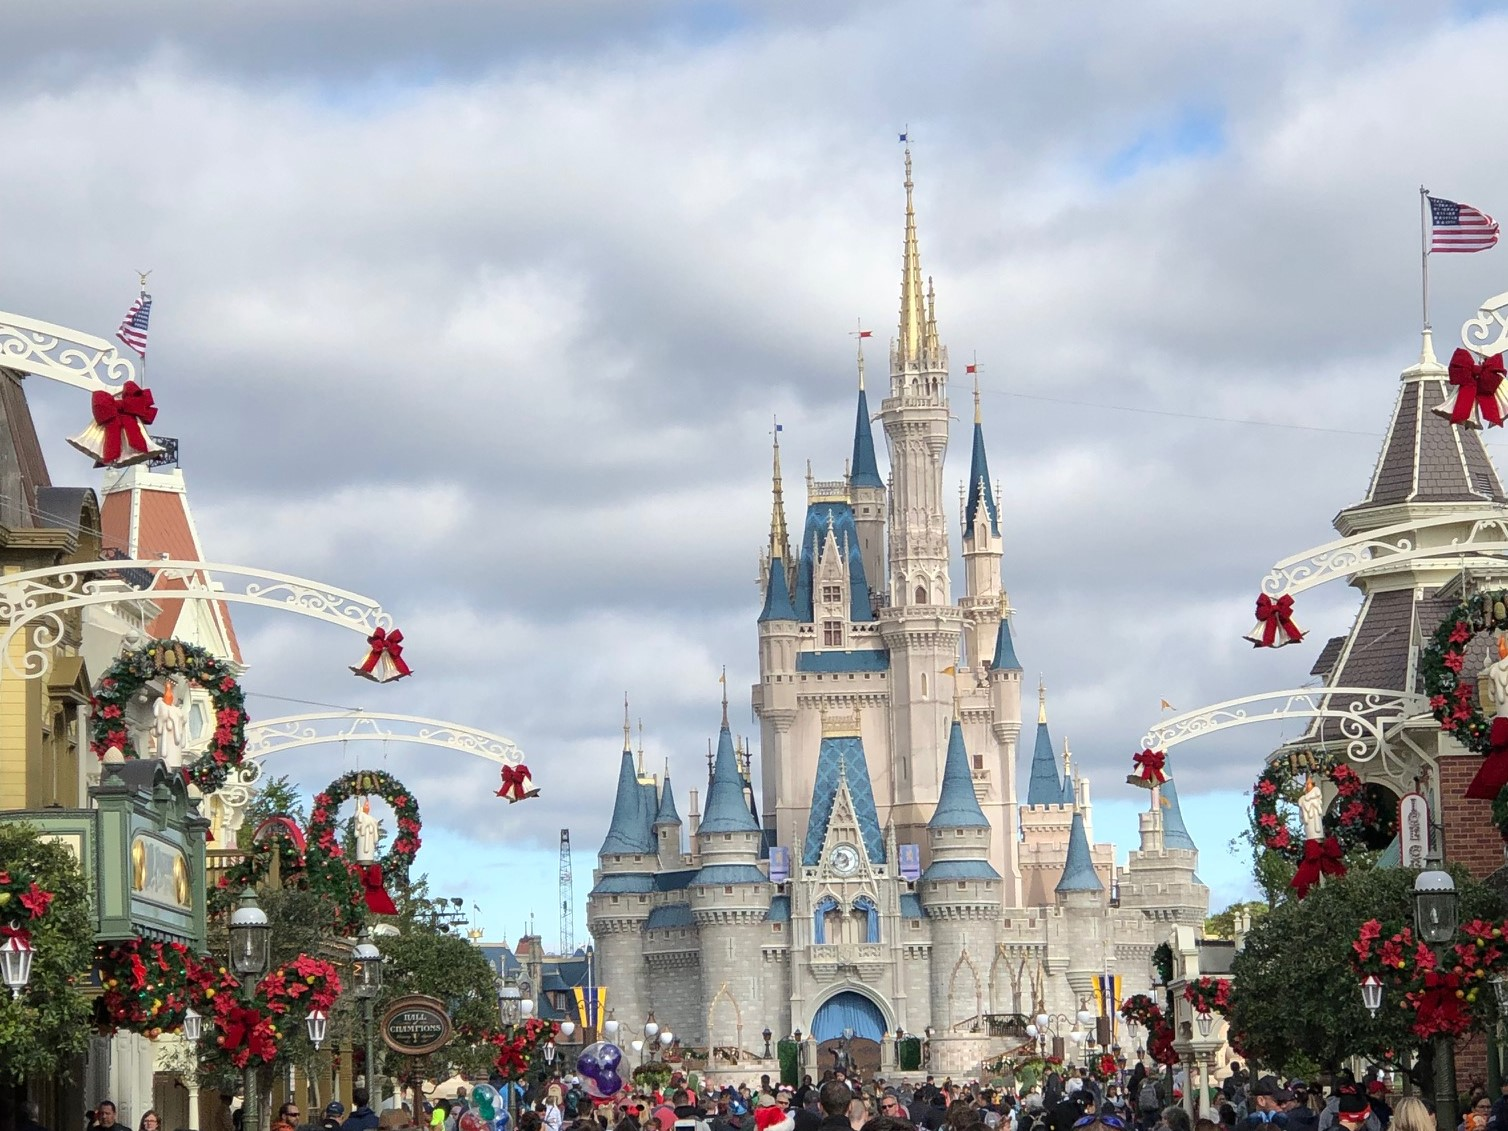 5 Great Reasons To Visit the Walt Disney World Resort during the 2019 Holiday Season